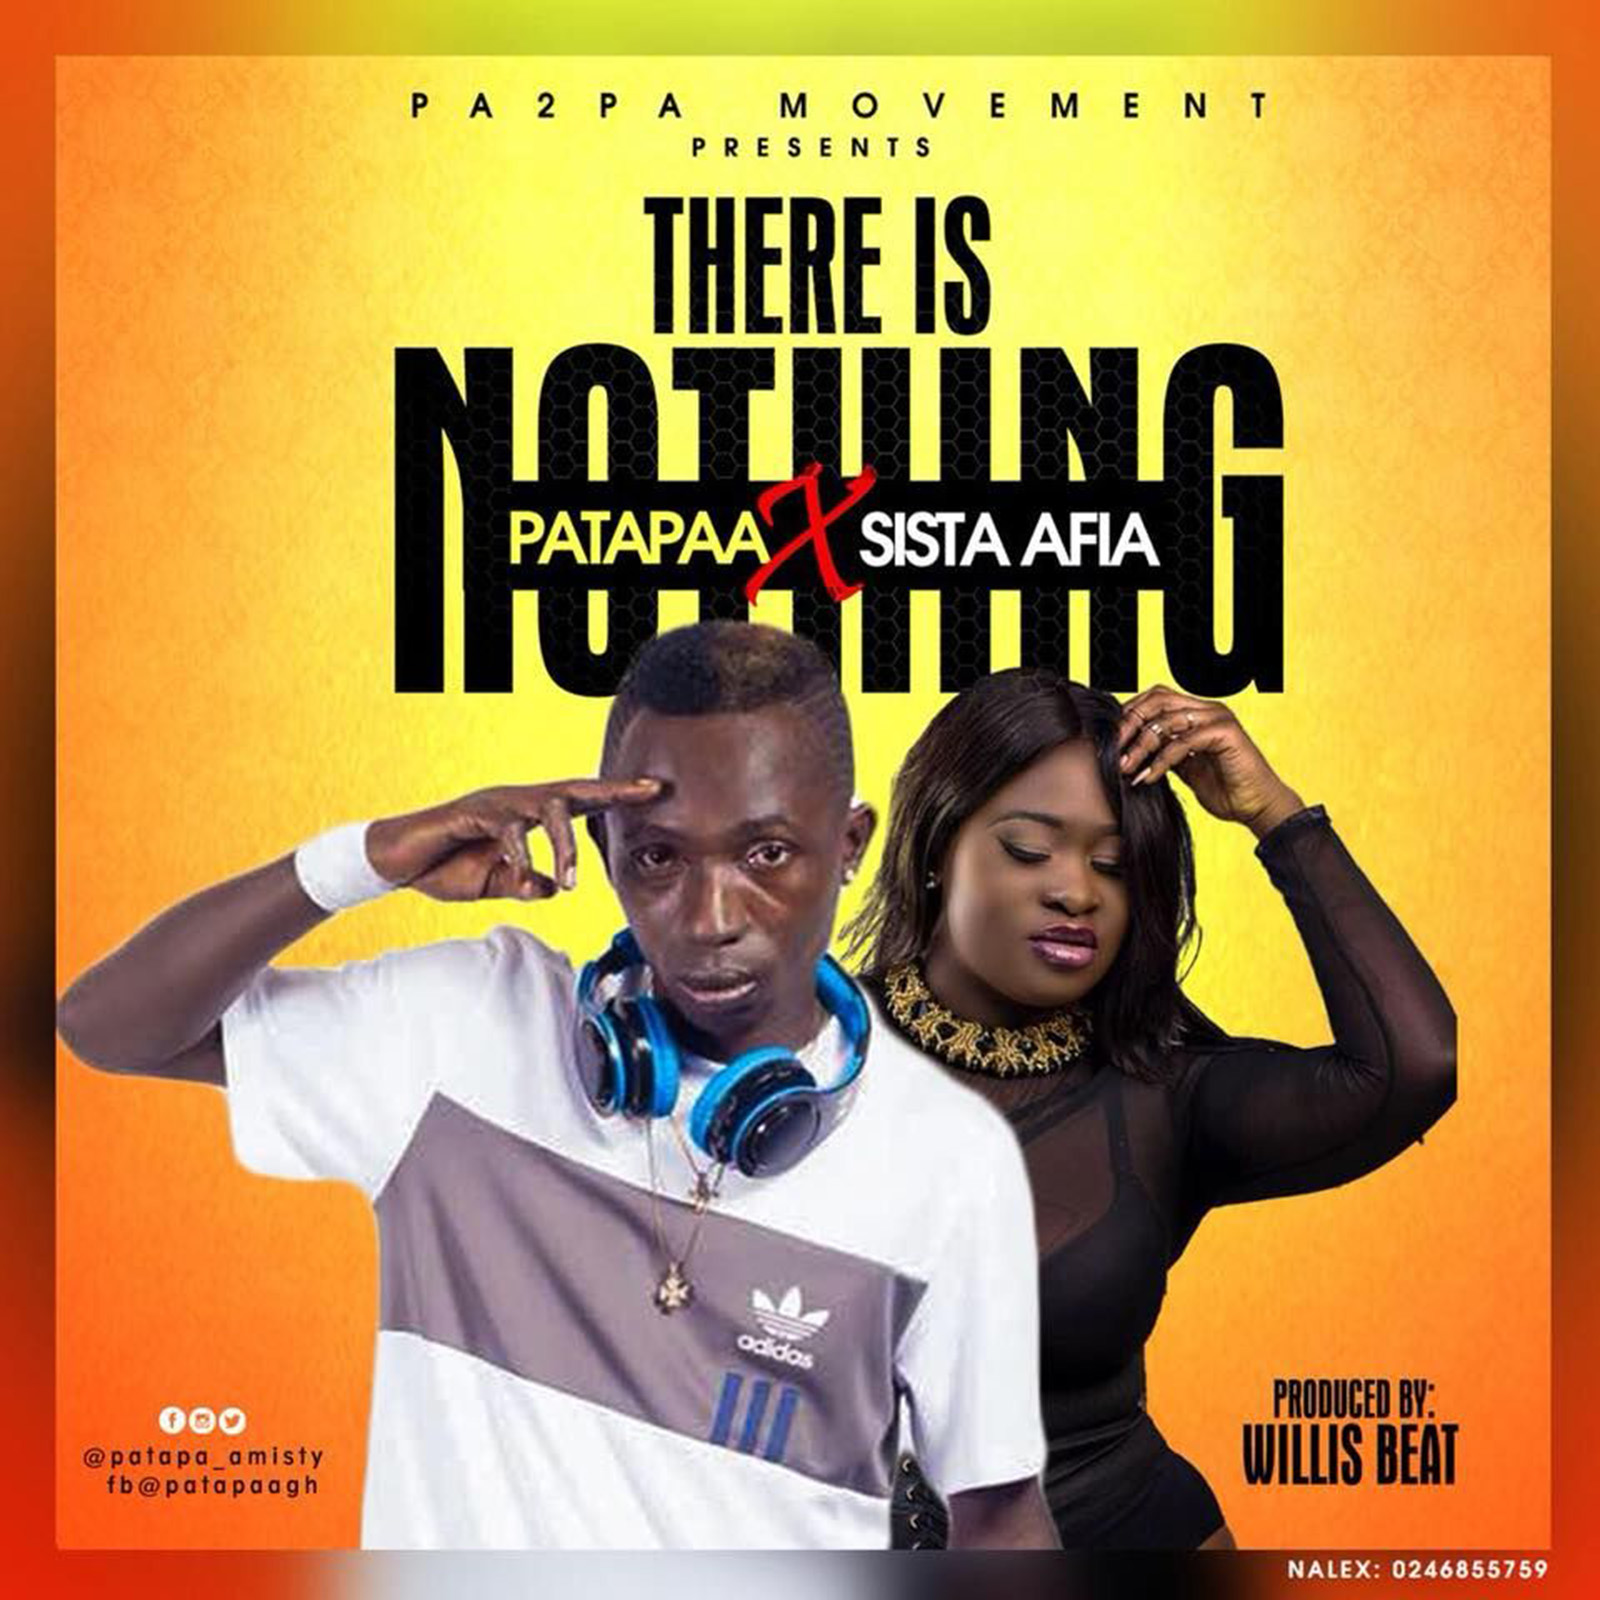 There Is Nothing by Patapaa feat. Sista Afia